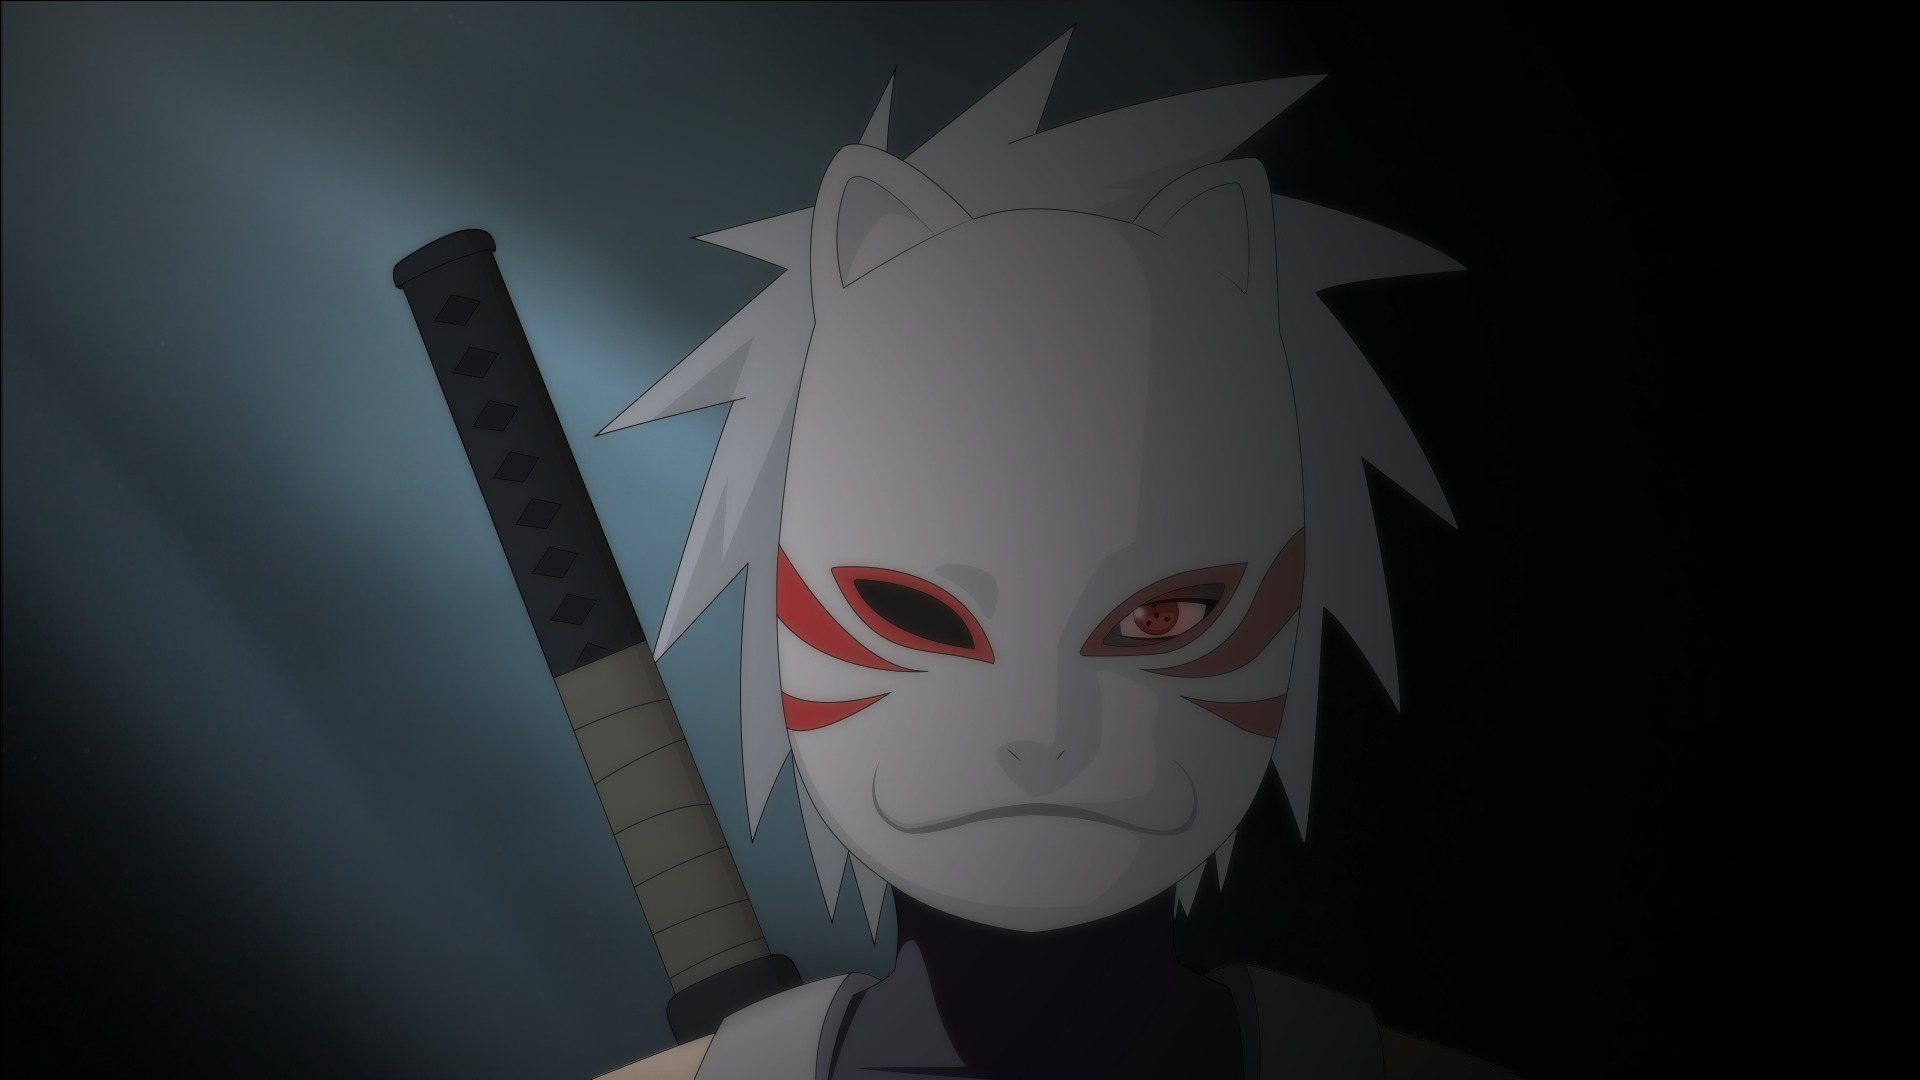 kakashi Anbu Computer Wallpapers Desktop Backgrounds 1920x1080 ID 1920x1080